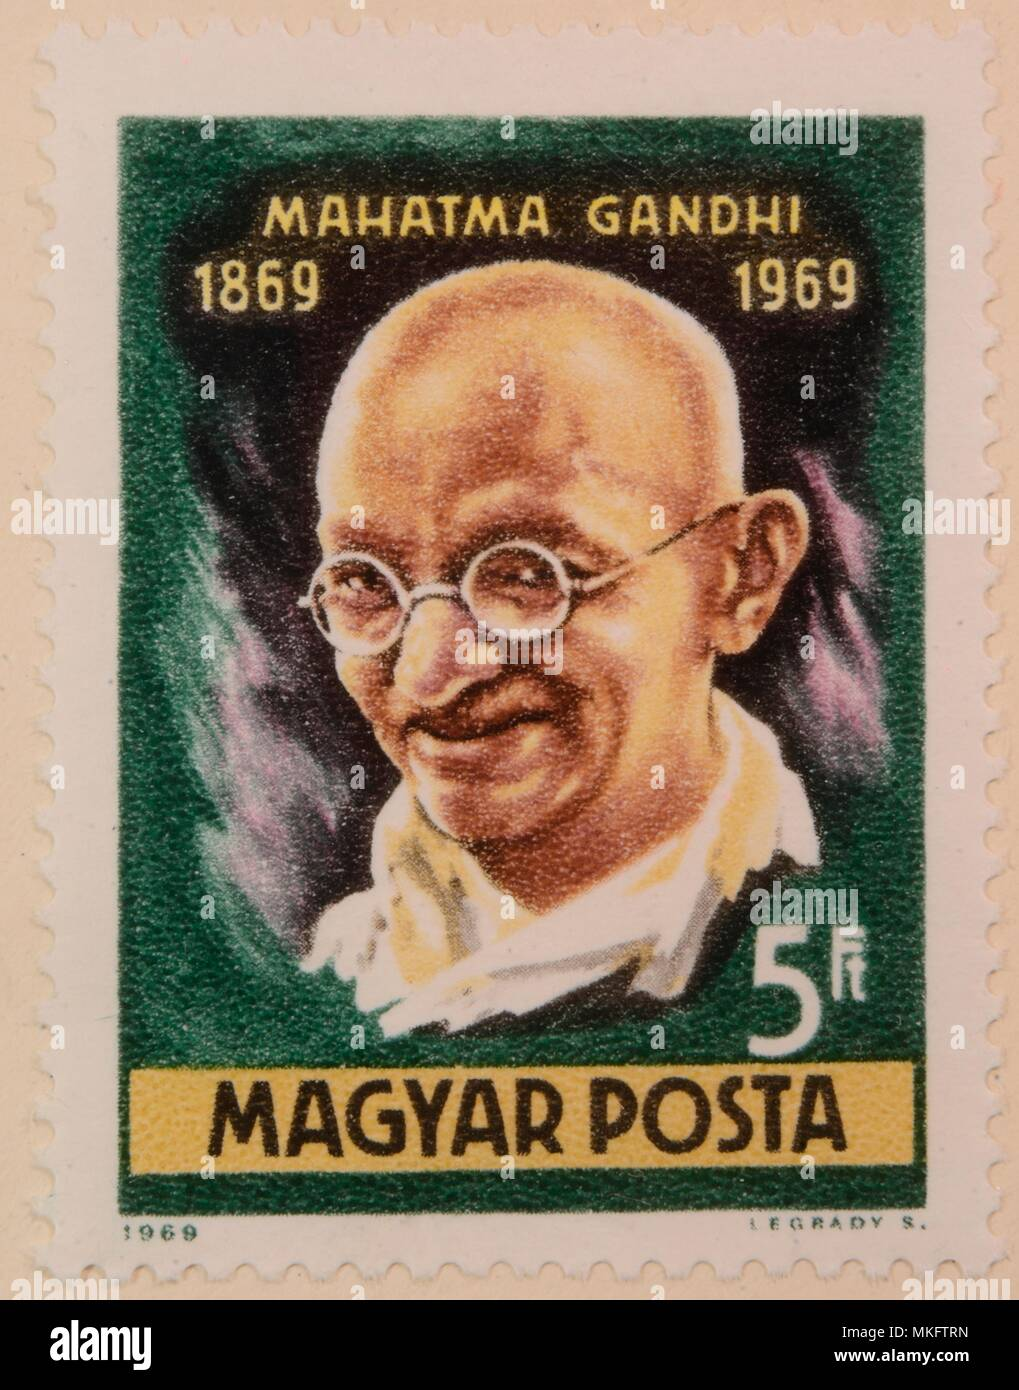 Mahatma Gandi, the leader of India's non-violent independence movement, portrait on a Hungarian stamp - Stock Image